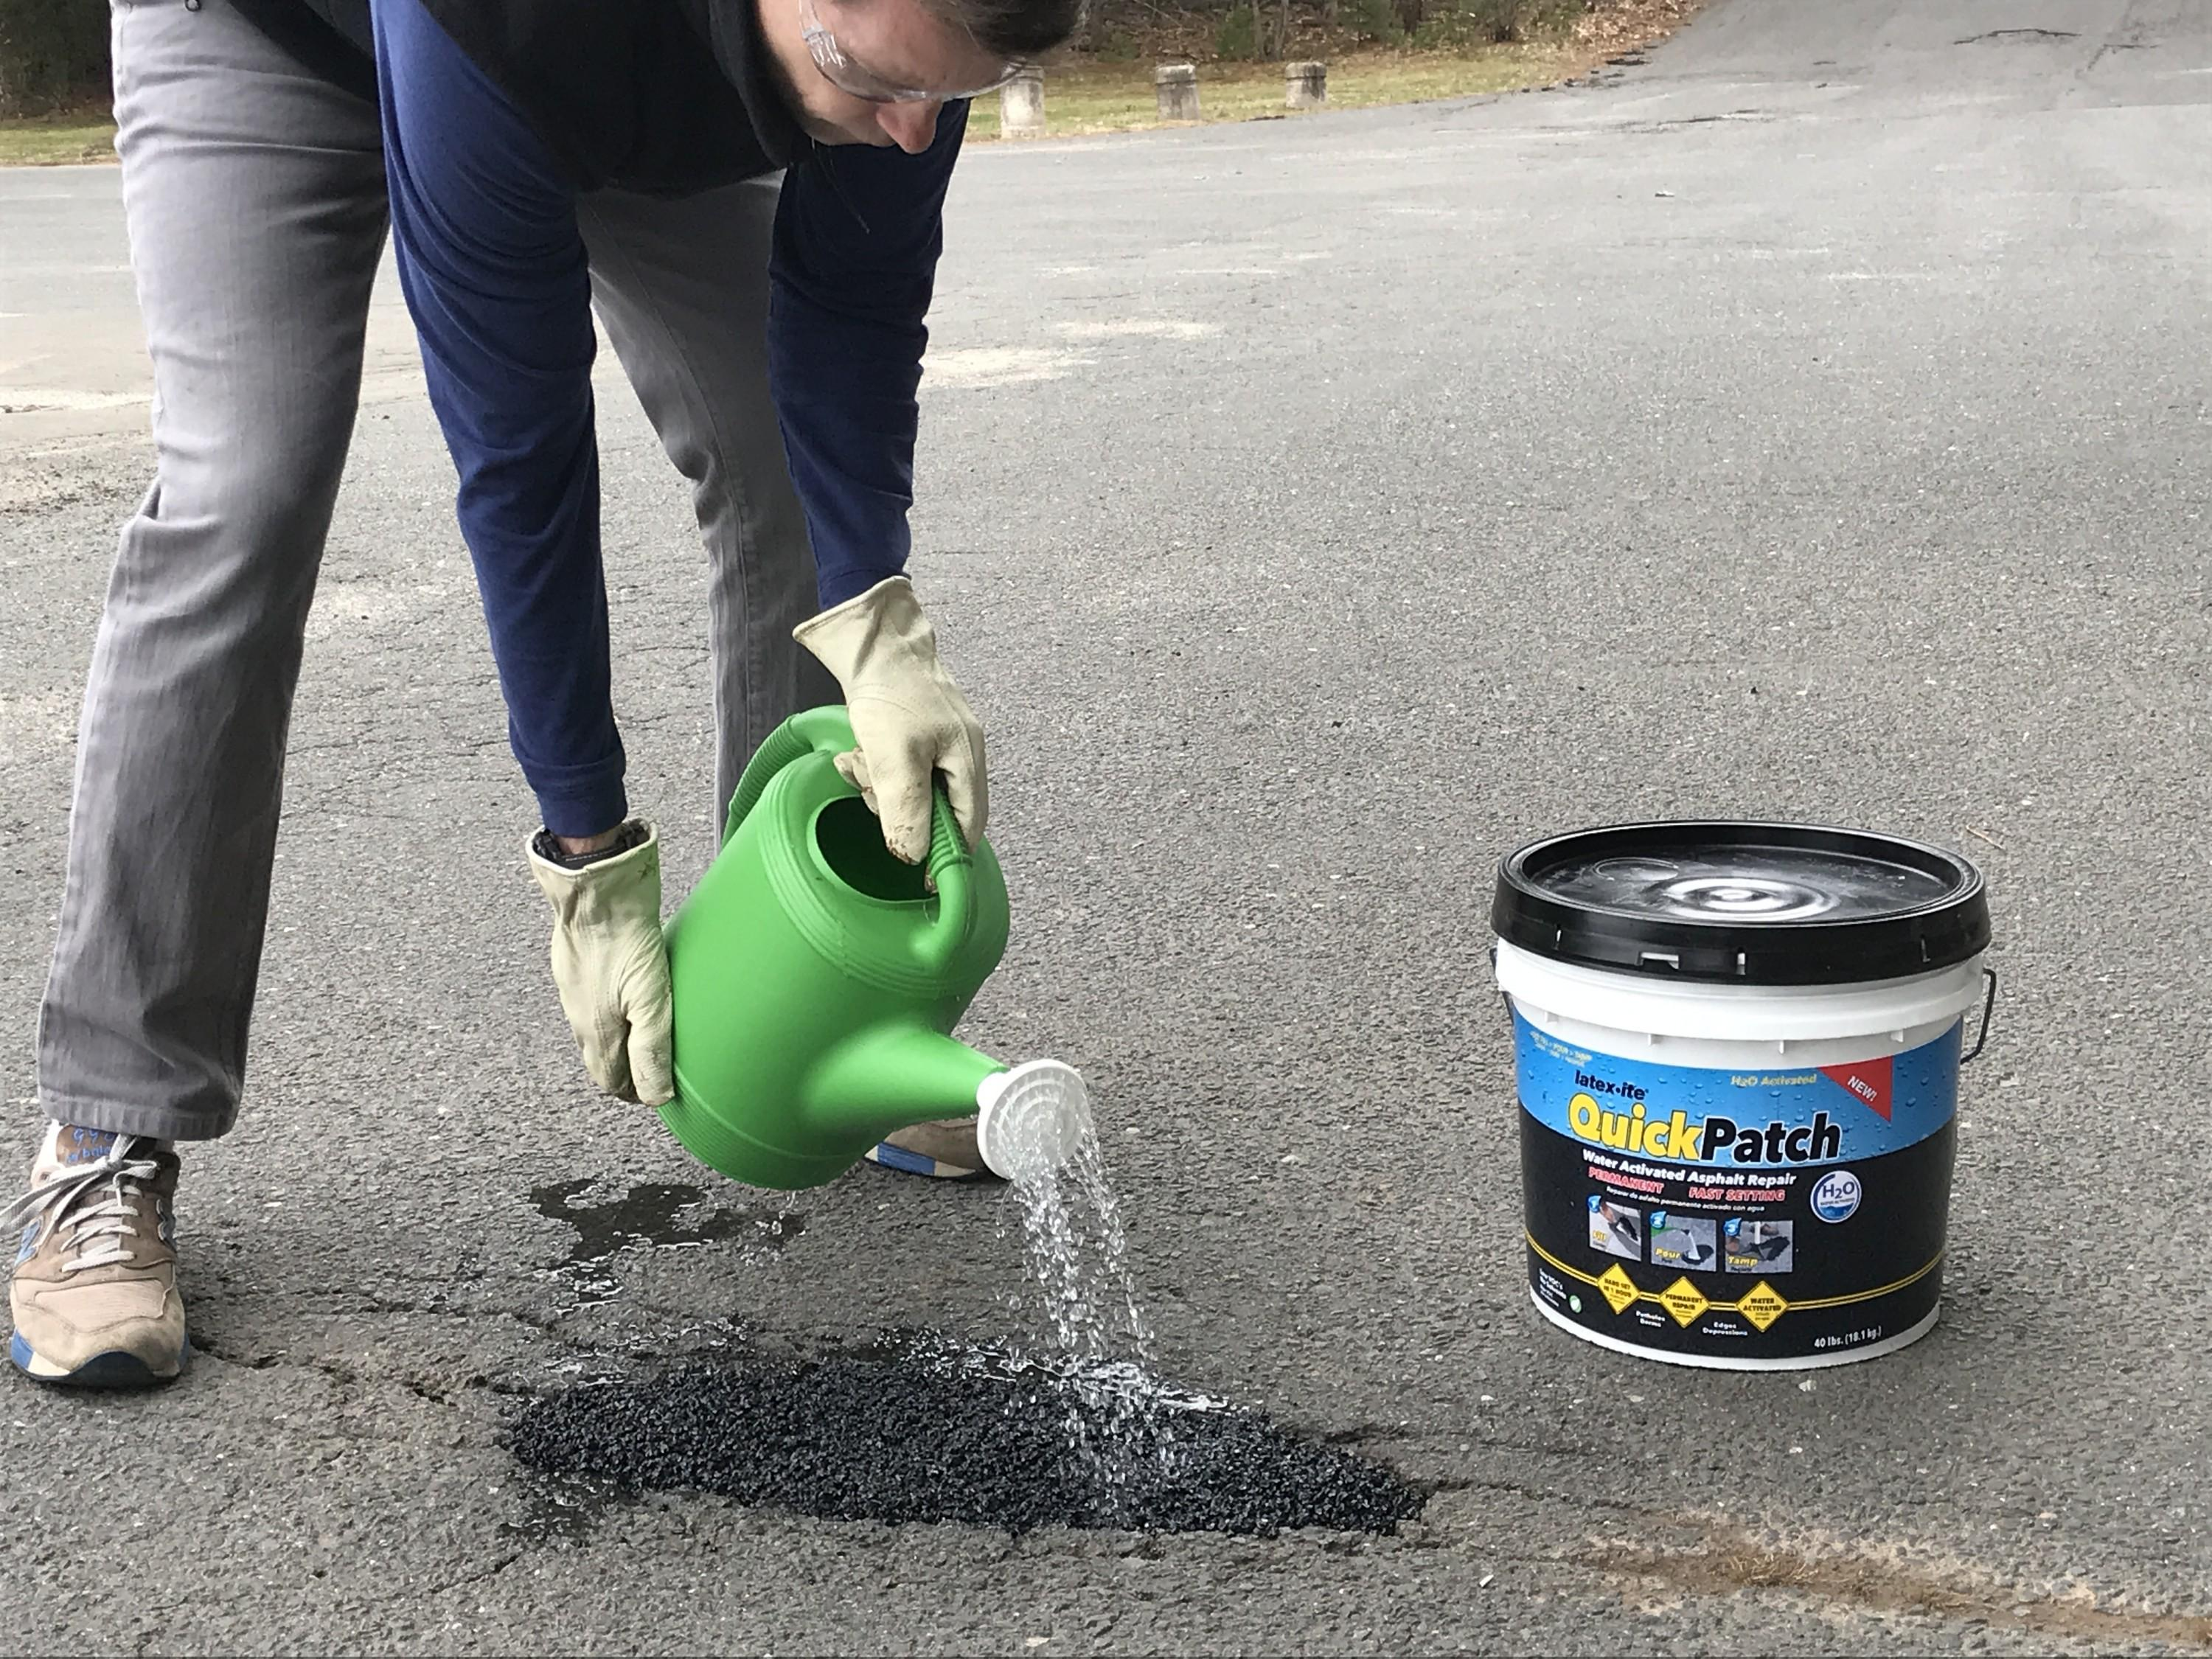 New Quick Patch H2o Water Activated Asphalt Repair Dalton Coatings